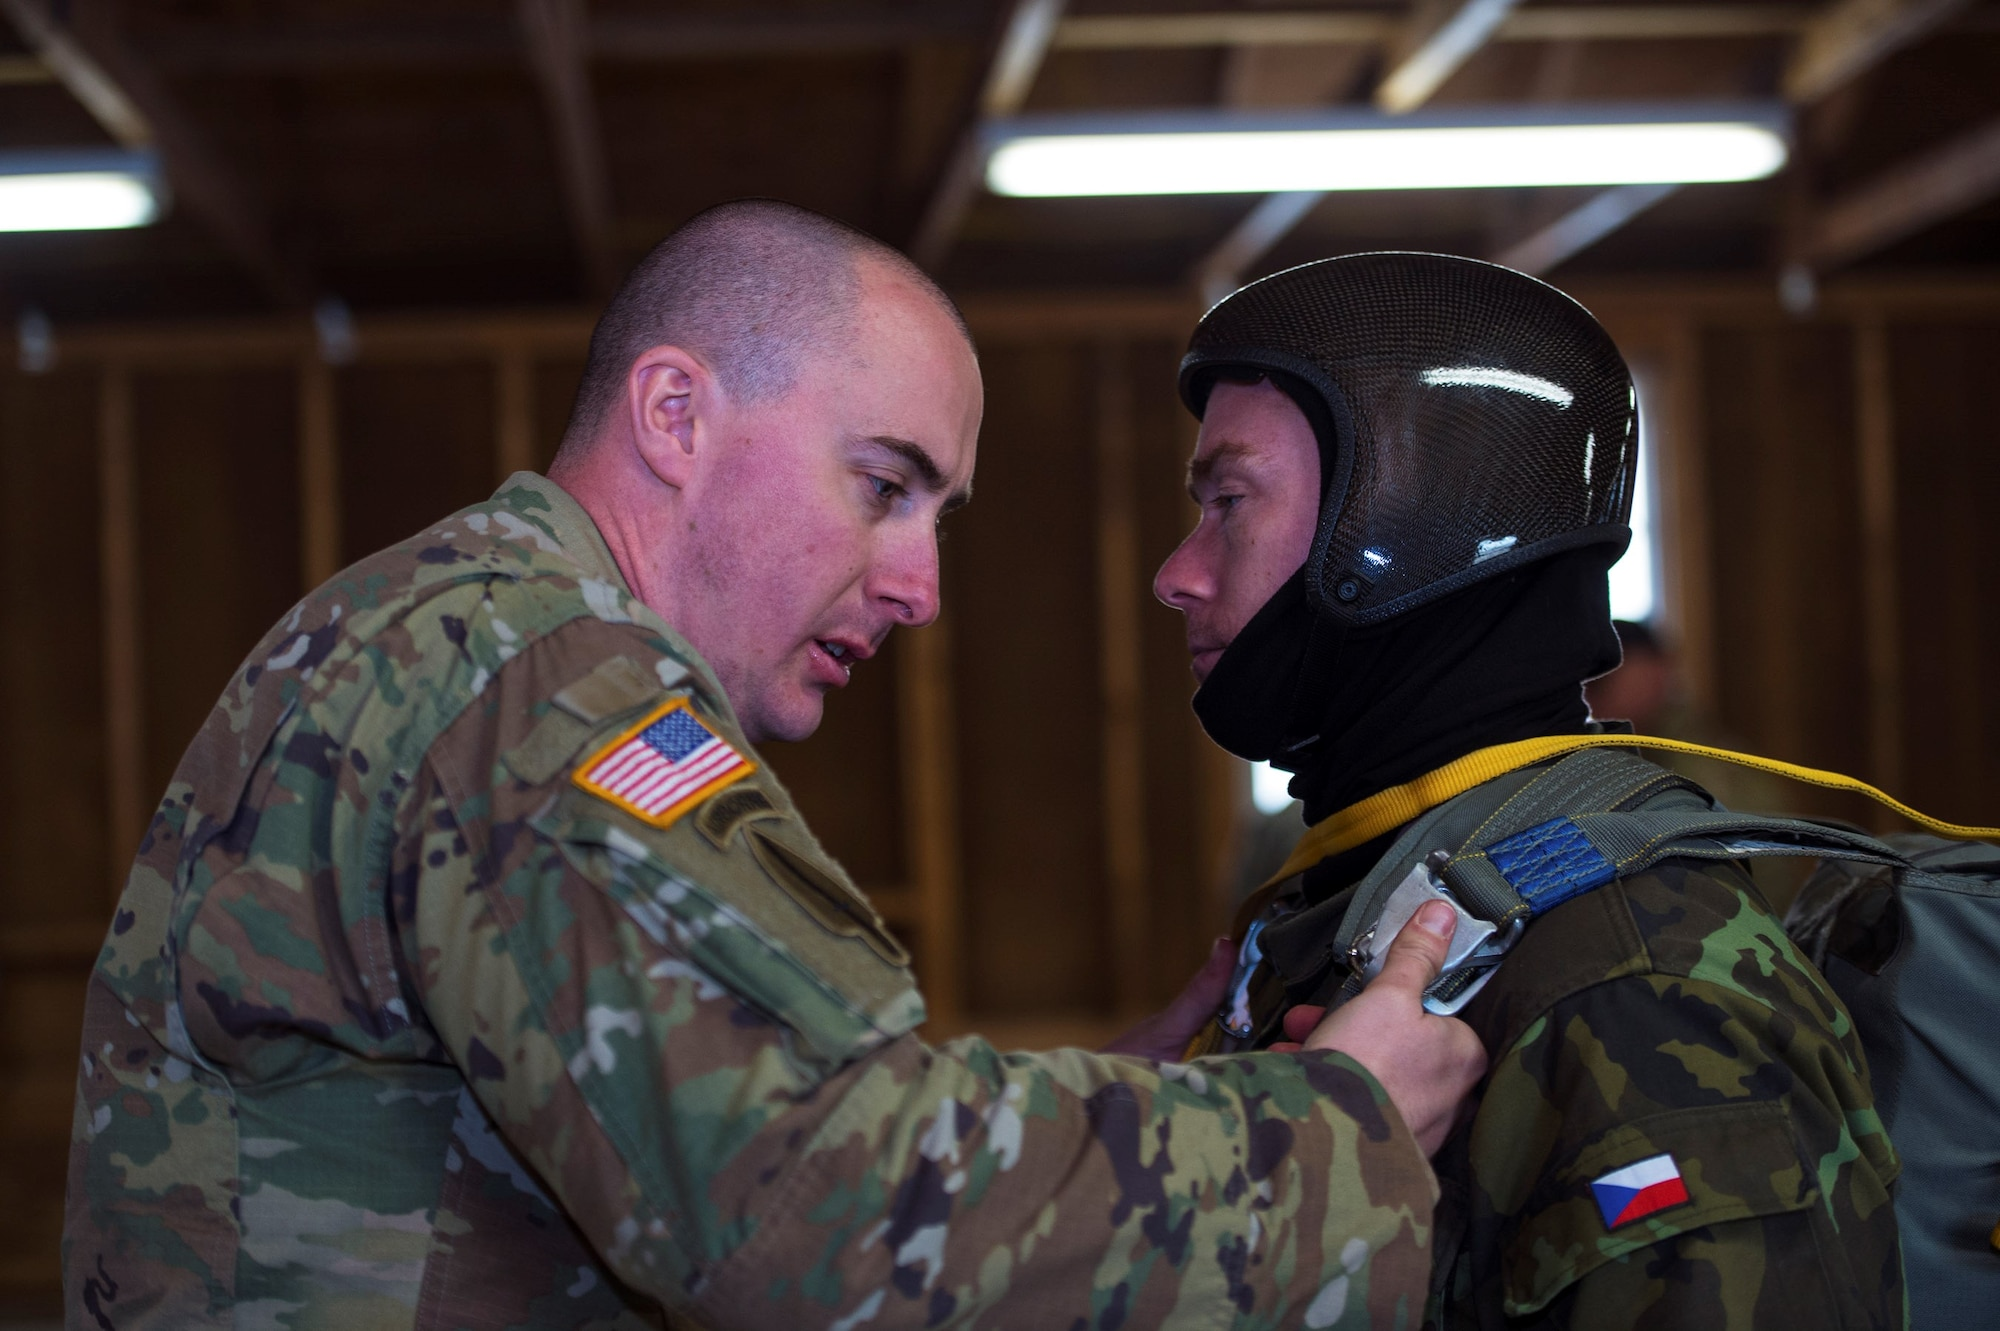 U.S. Army Staff Sgt. Nathaniel Bier, 301st Psychological Operations Company airborne specialist, left, inspects Czech Republic army warrant officer Miroslav Kloupar's parachute ensemble during the 19th Annual Randy Oler Memorial Operation Toy Drop, Dec. 16, 2016, at Mackall Army Air Field, N.C. OTD is the world's largest annual multinational airborne exercise which included 120 jumpmasters and 4,000 paratroopers during this year's event. (U.S. Air Force photo by Airman 1st Class Greg Nash)